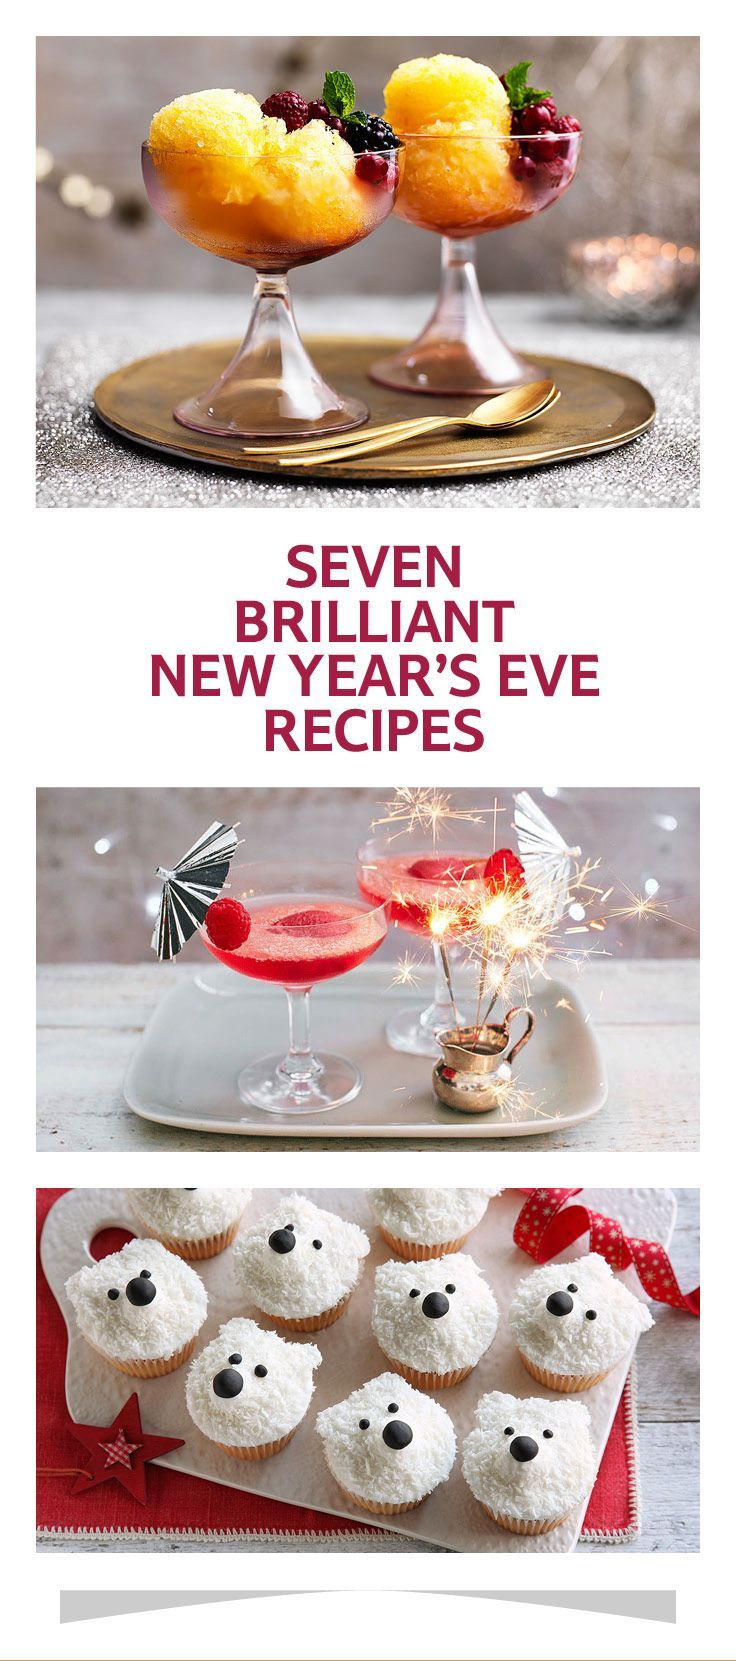 Seven brilliant New Year's Eve recipes New year's eve